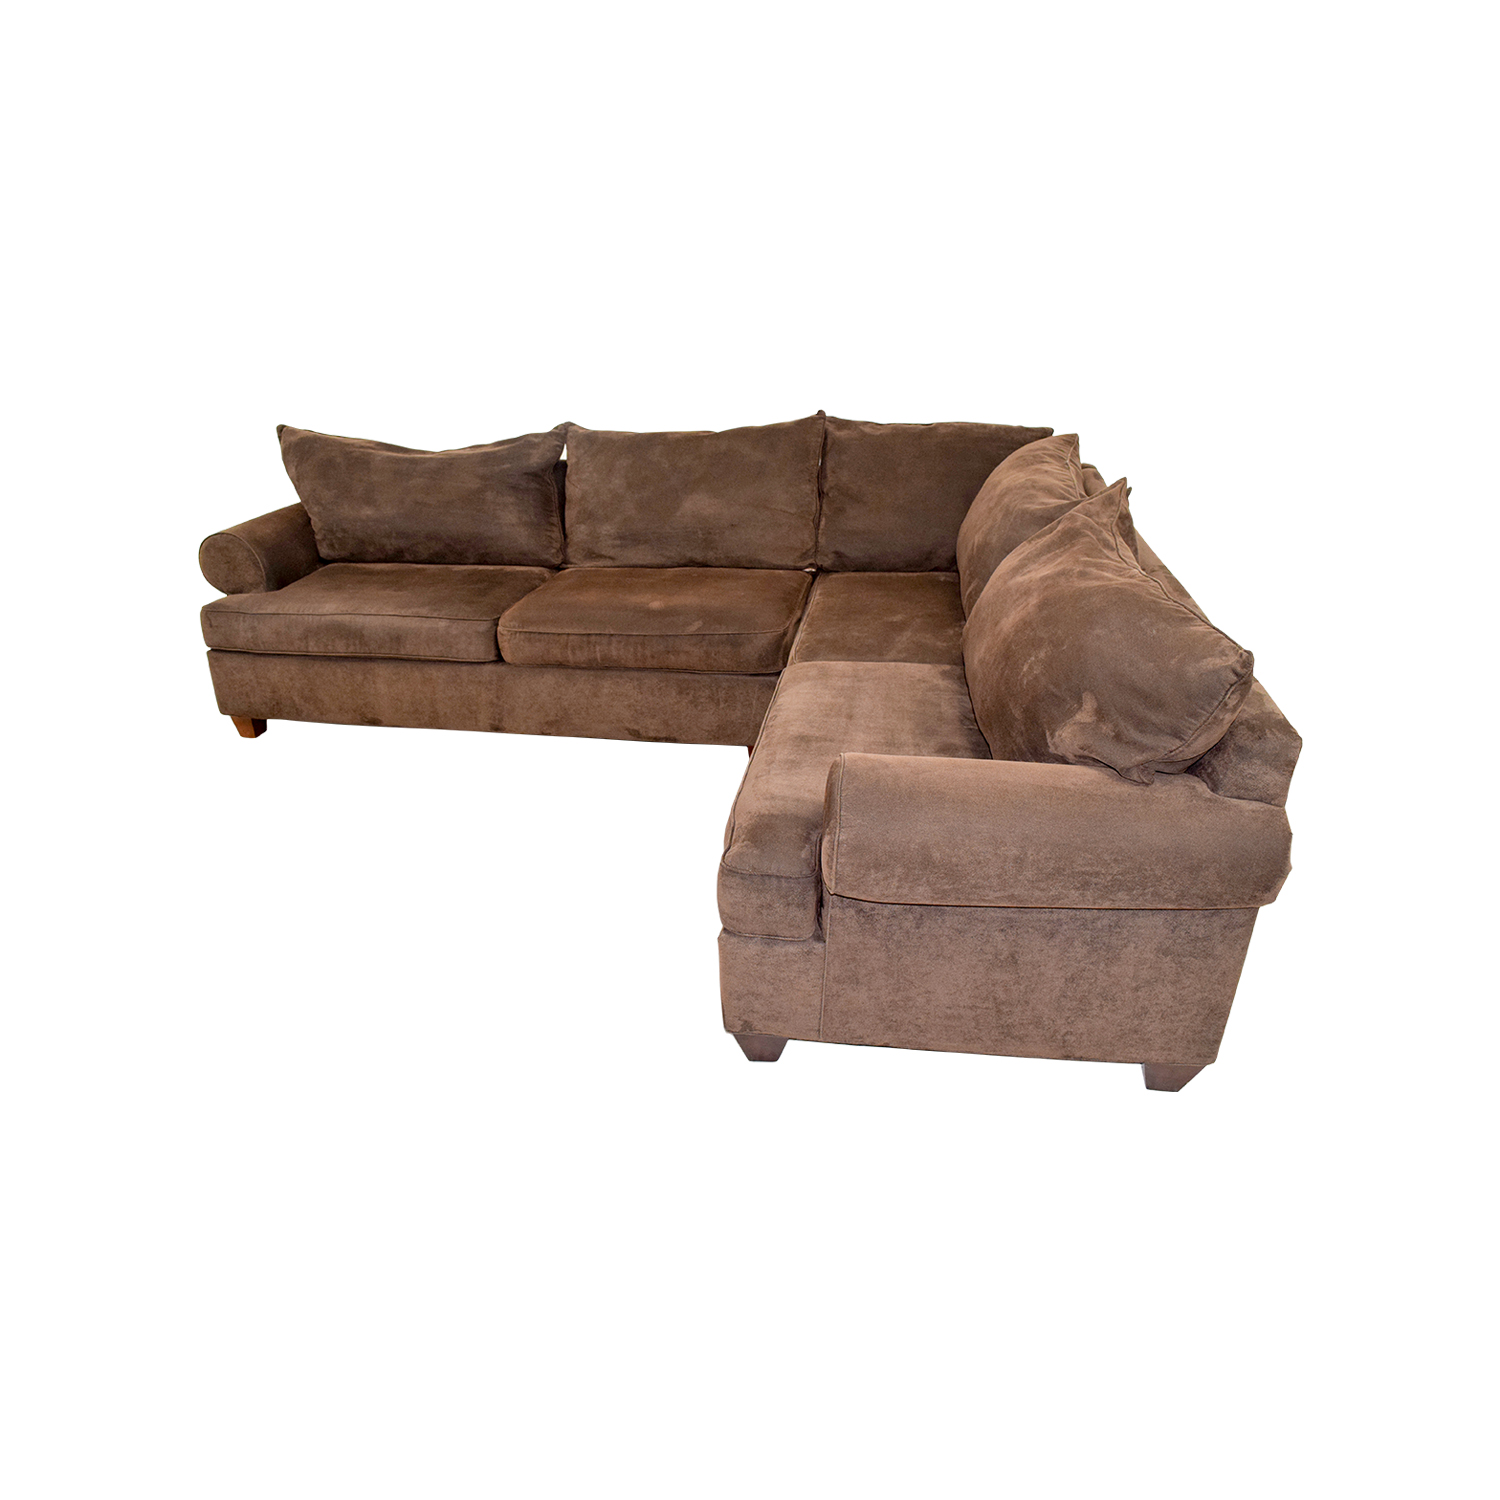 Sectional Sofa Corduroy 75% Off - Brown Corduroy L-shaped Sectional Couch / Sofas